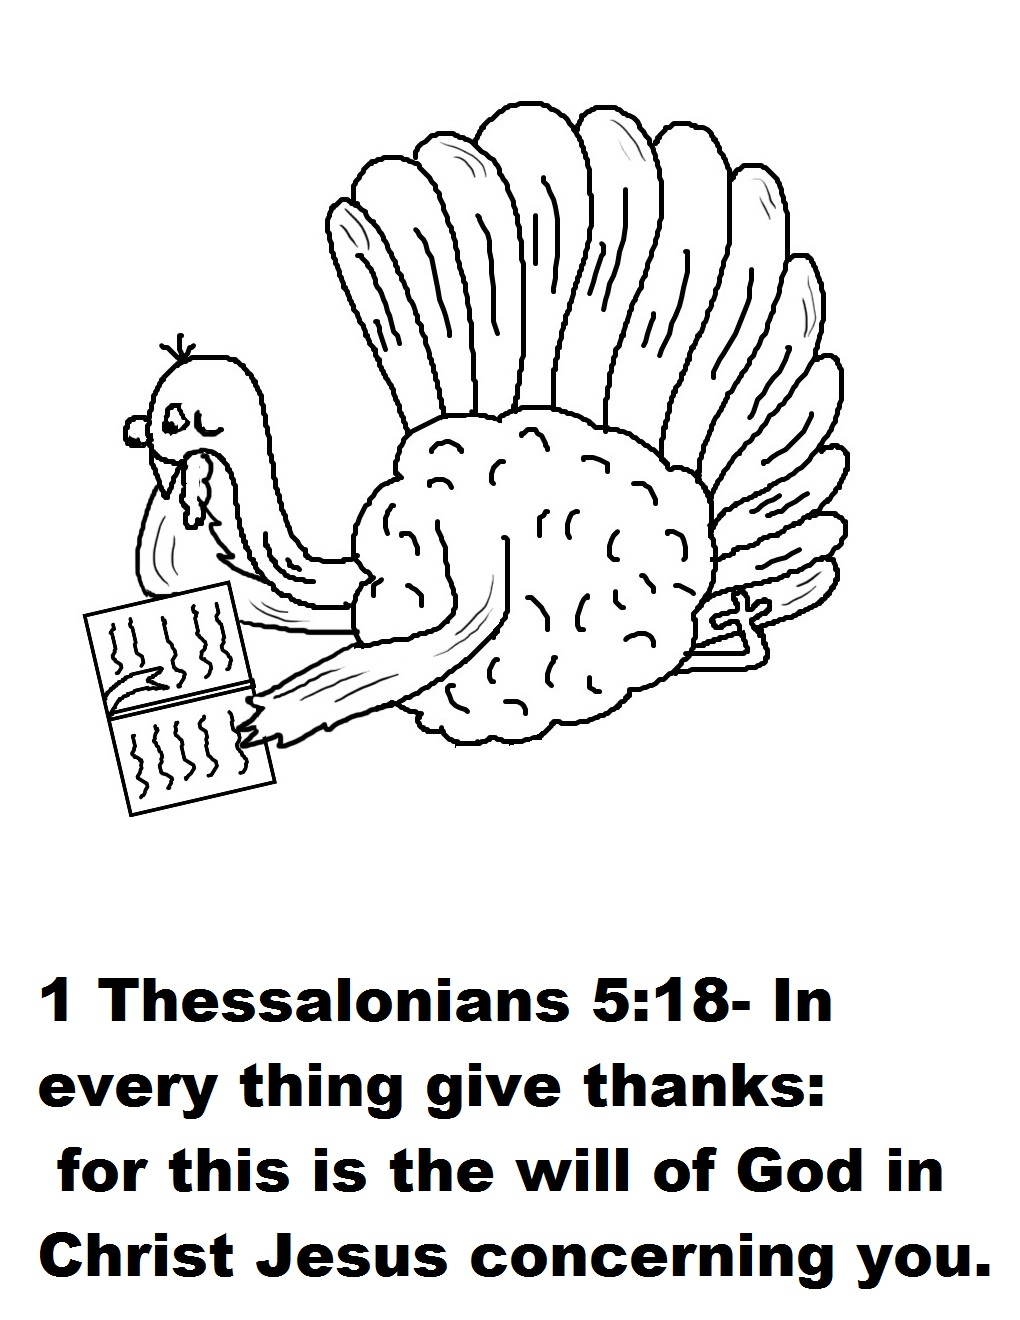 bible coloring pages thankfulness - photo#17